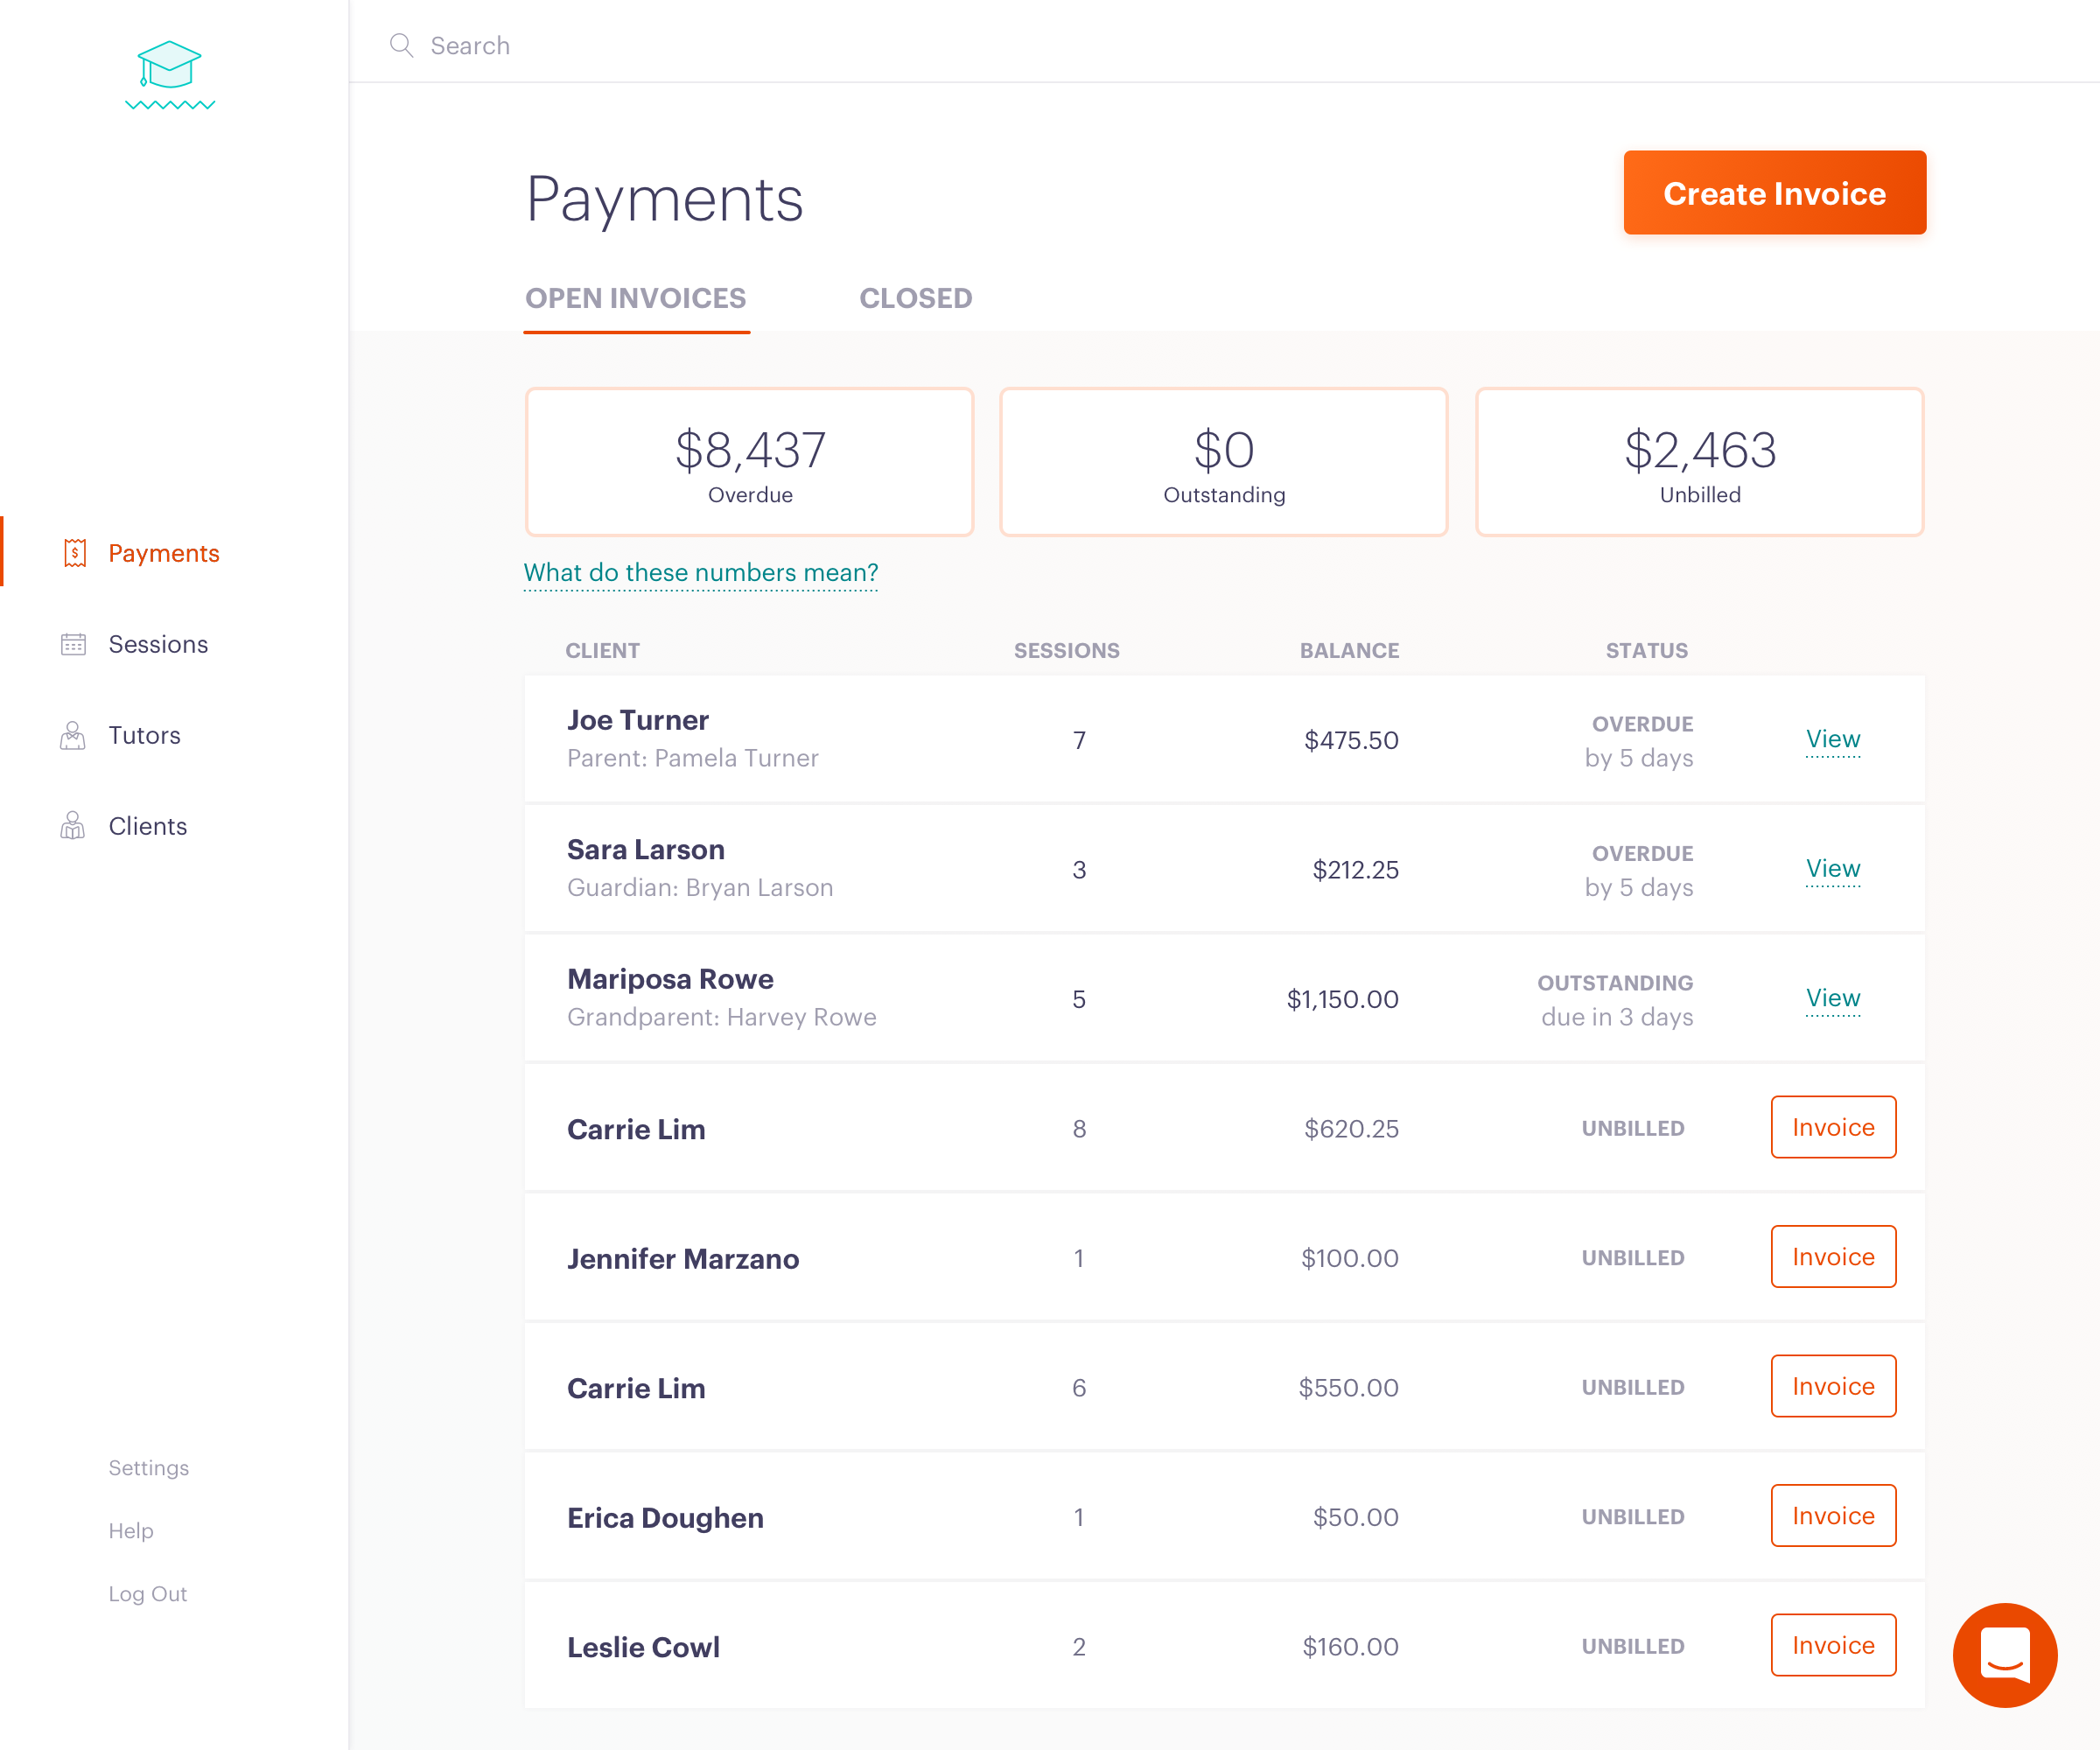 Payments Clark Help Center - How to create an invoice for payment